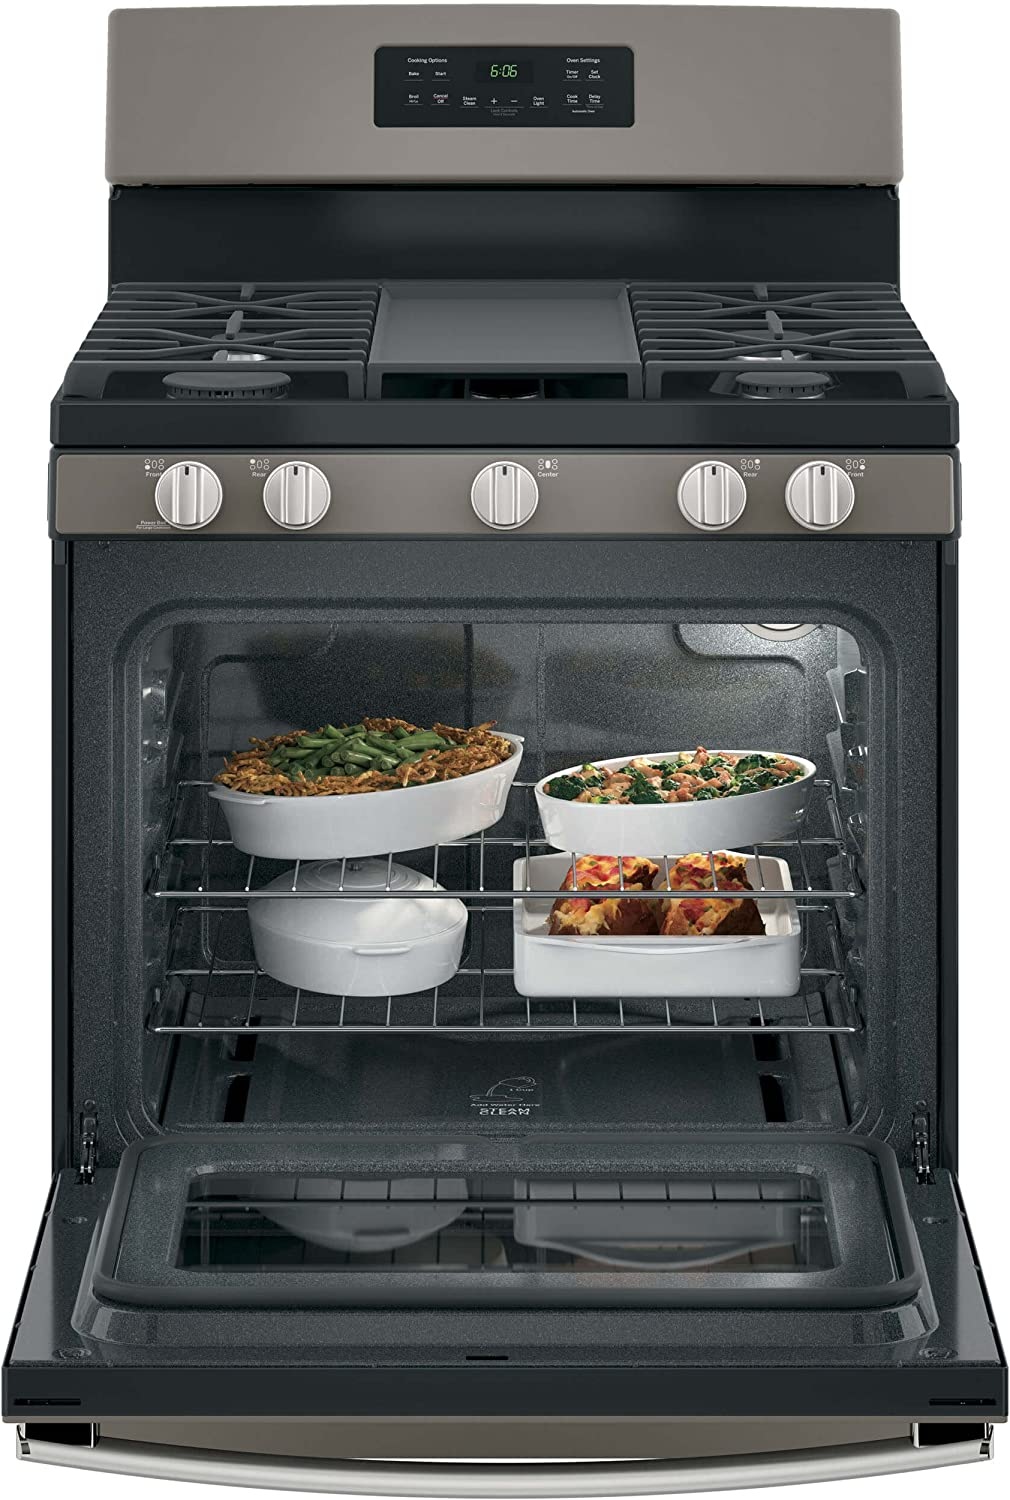 commercial-ovens-from-GE-store